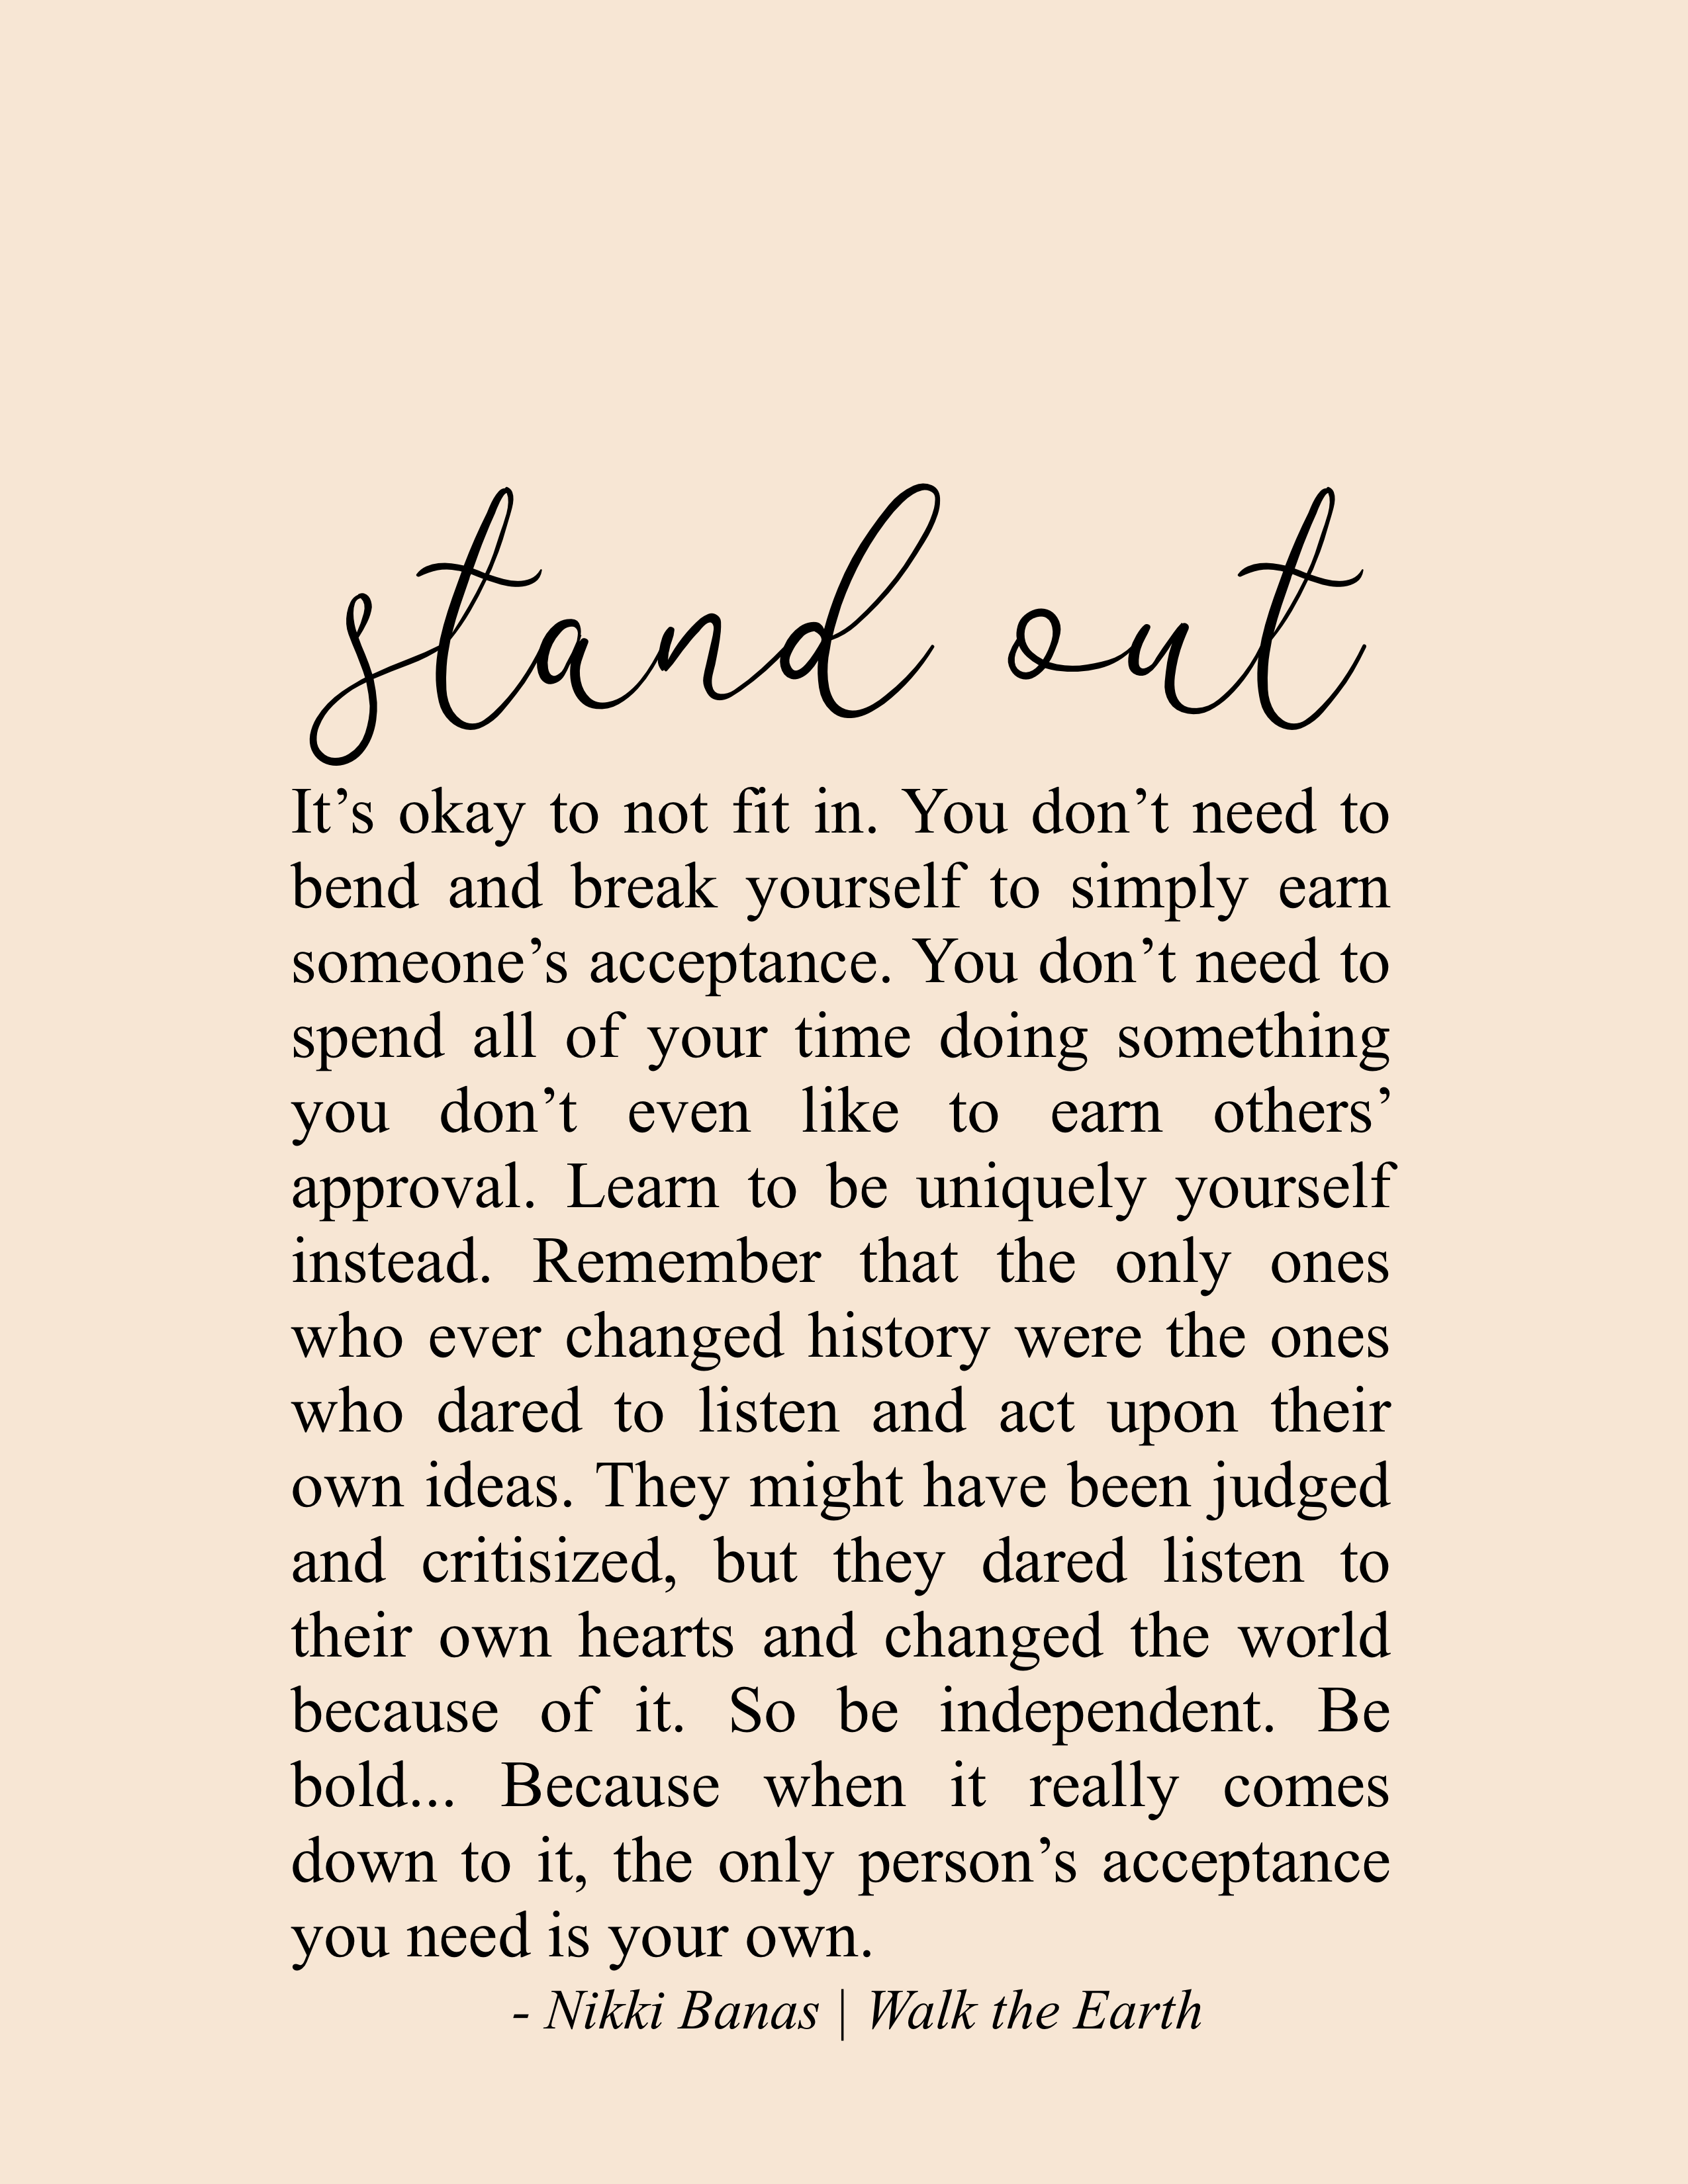 Stand Out Quotes, Standing Out from the Crowd, Be Yourself Poetry & Quotes, Inspiring Messages